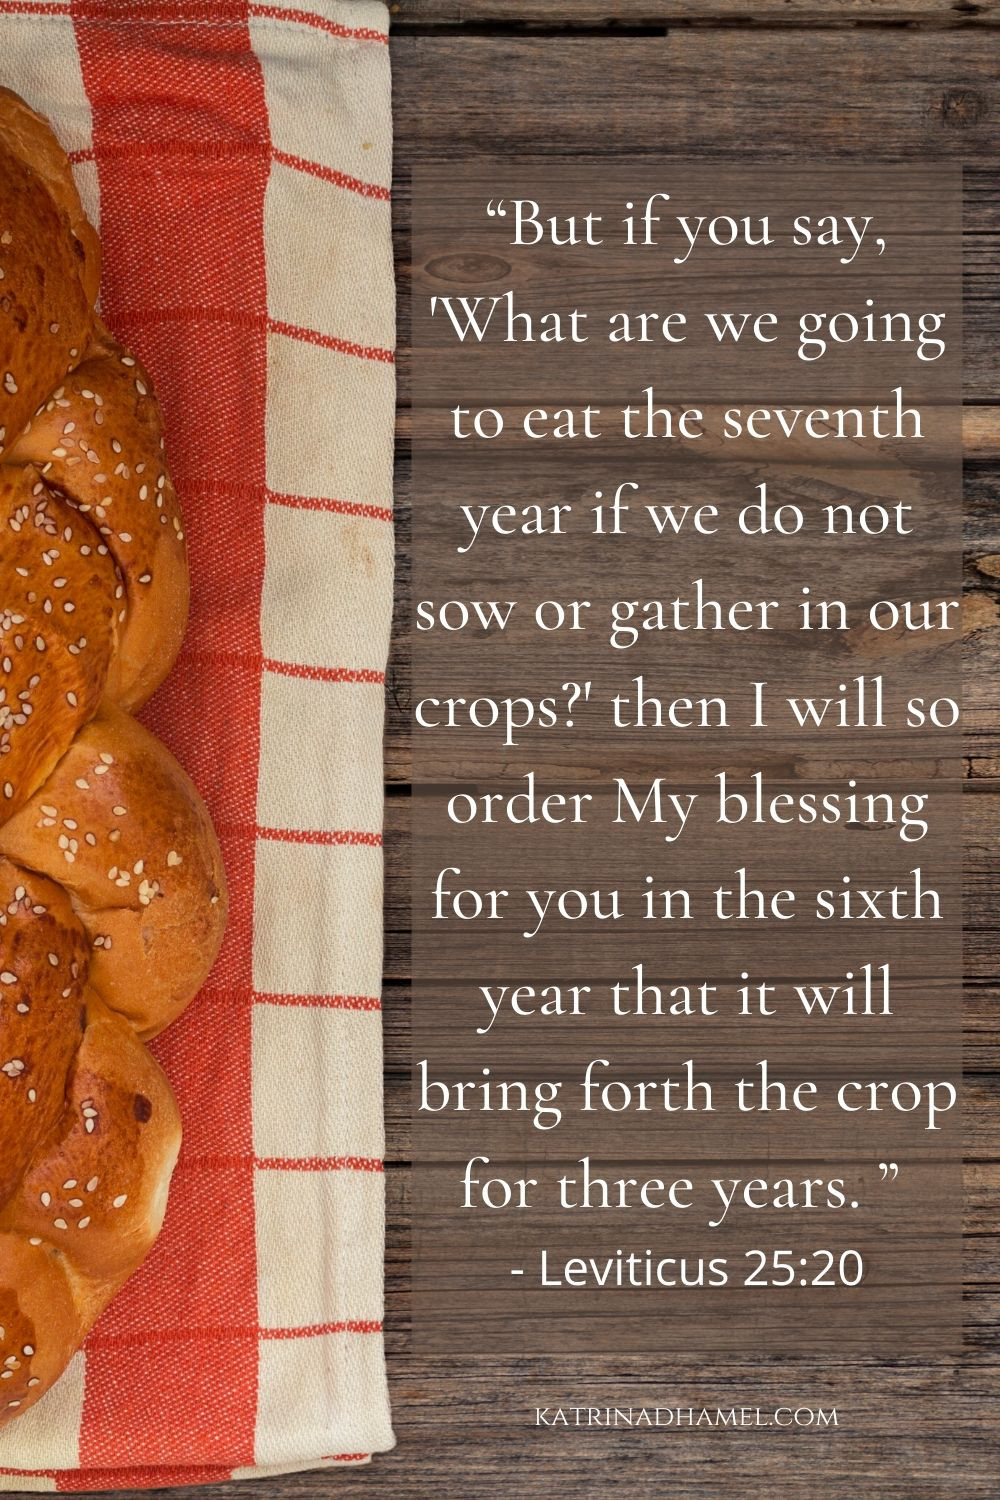 Leviticus 25:20 on a background of Shabbat bread